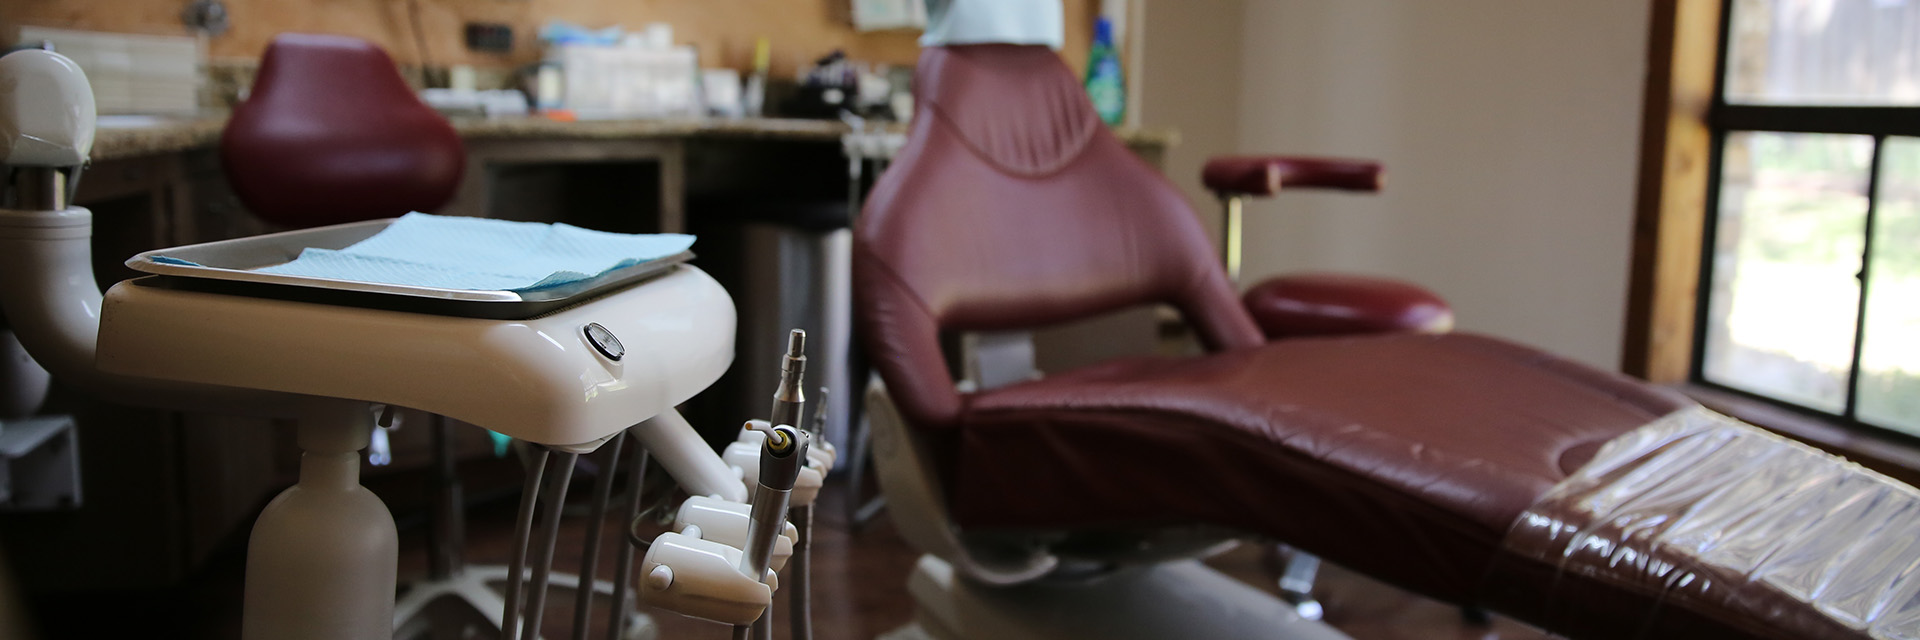 Dental Center of Belton dental tools and chair